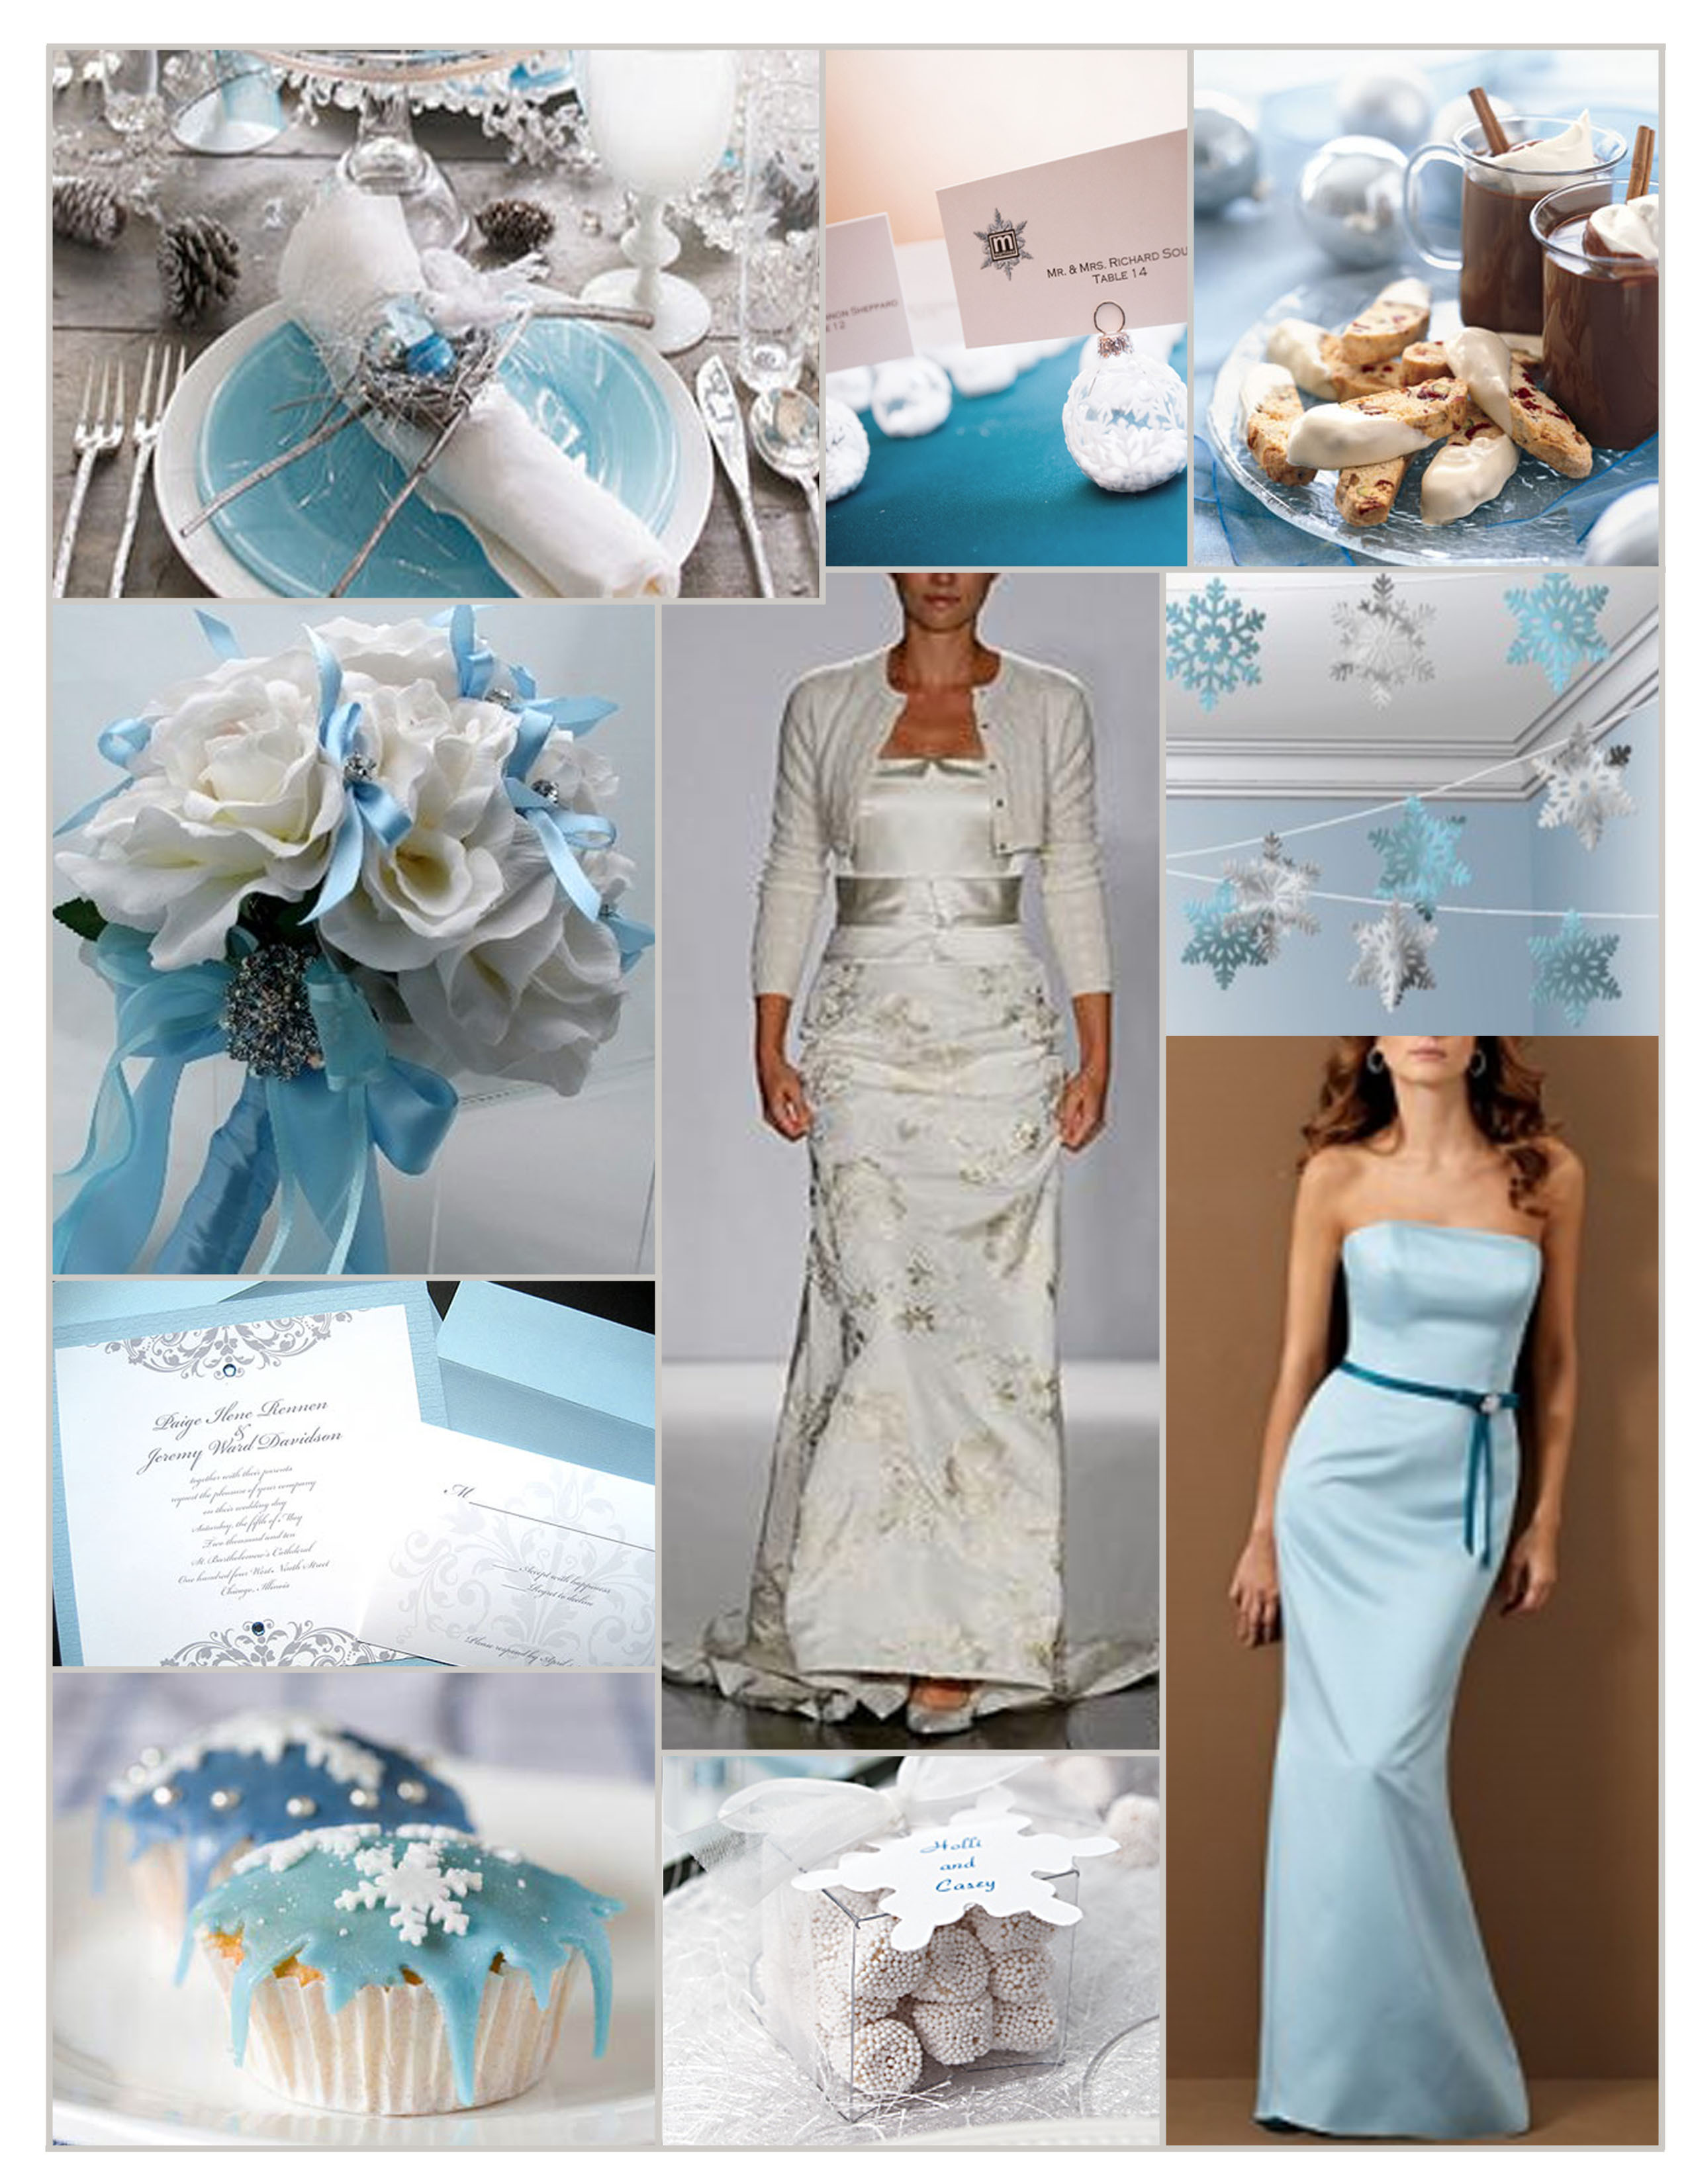 Inspiration, Reception, Flowers & Decor, Bridesmaids, Bridesmaids Dresses, Wedding Dresses, Cakes, Fashion, white, blue, silver, cake, dress, Bridesmaid Bouquets, Flowers, Board, Priscilla of boston, Alfred angelo, Flower Wedding Dresses